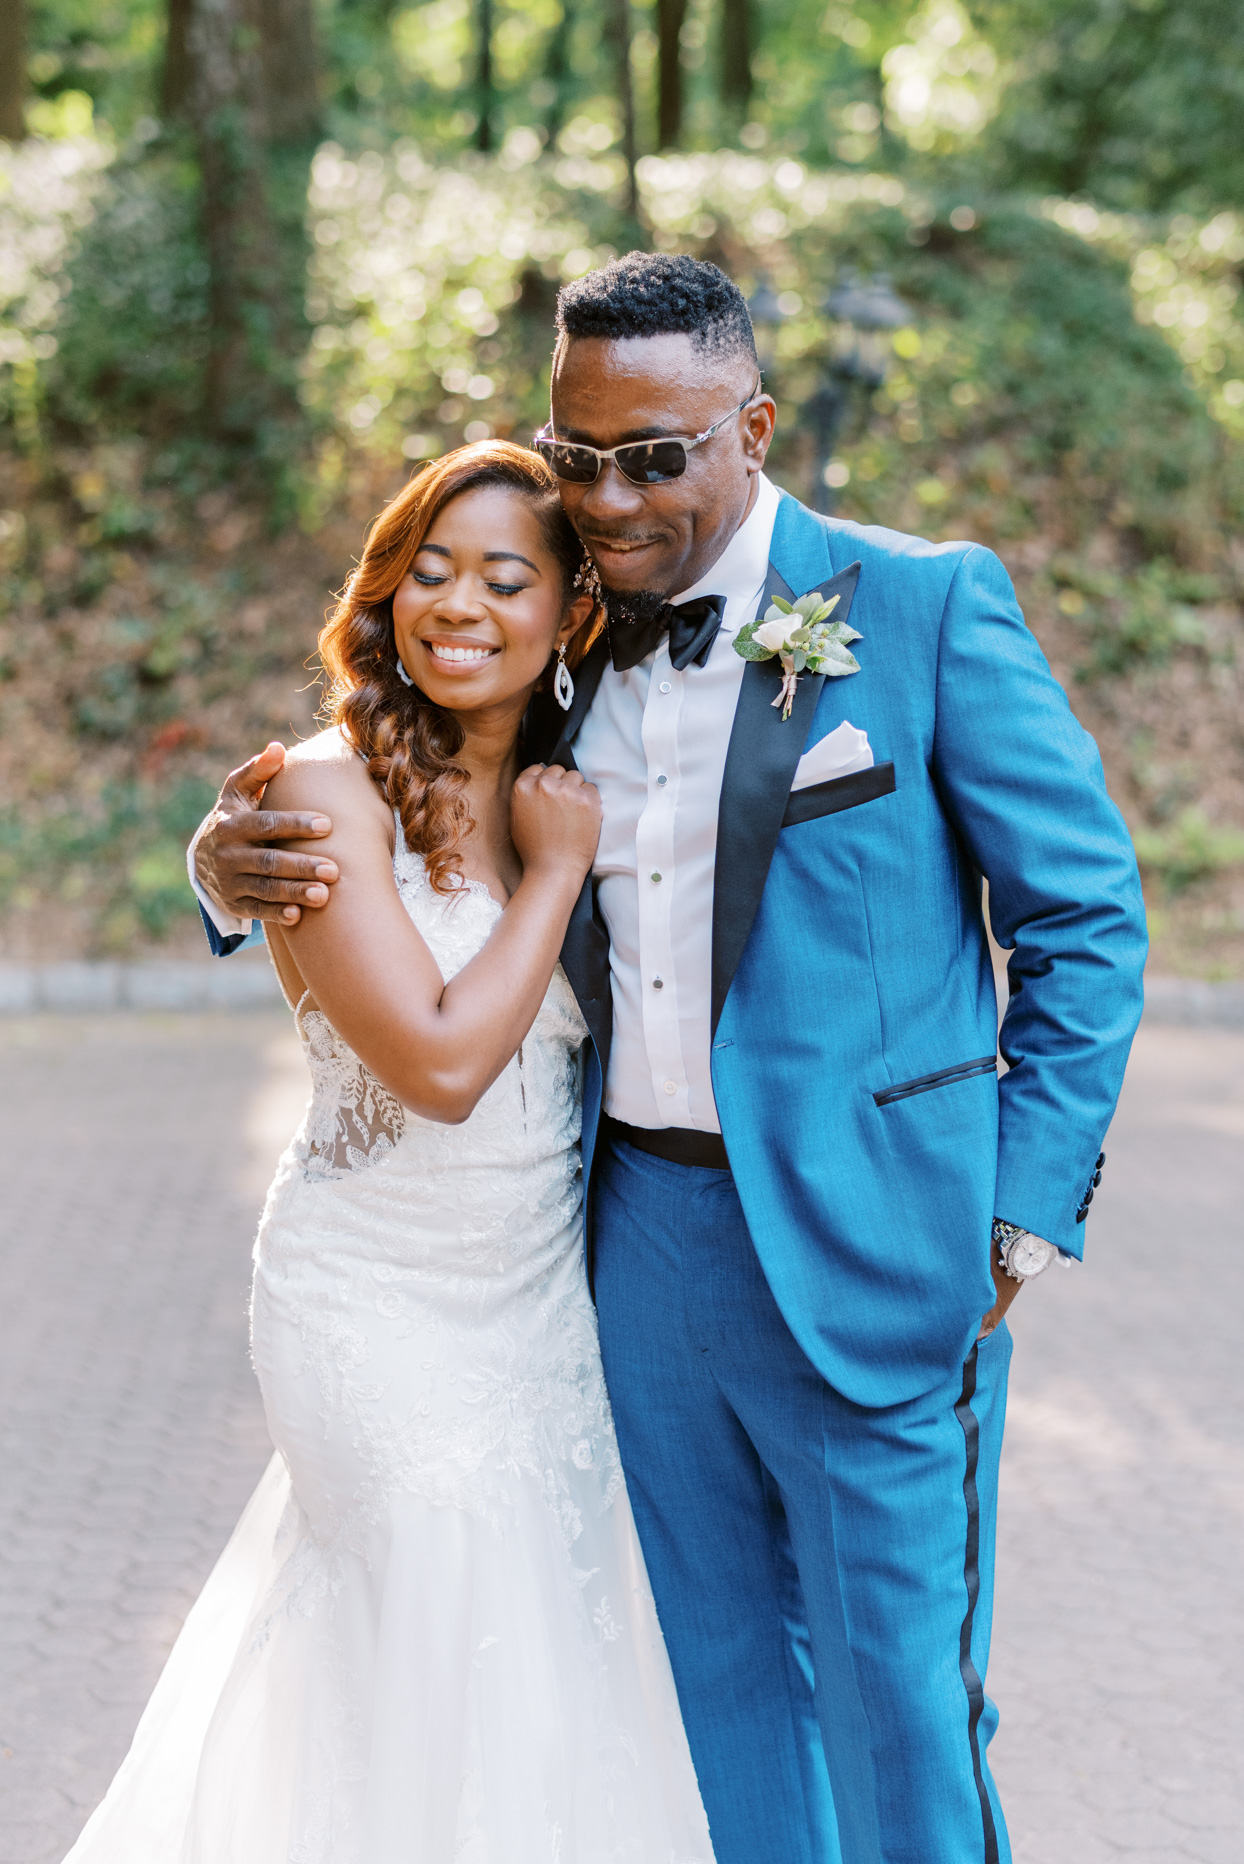 bride smiling with dad wearing blue suit and sunglasses